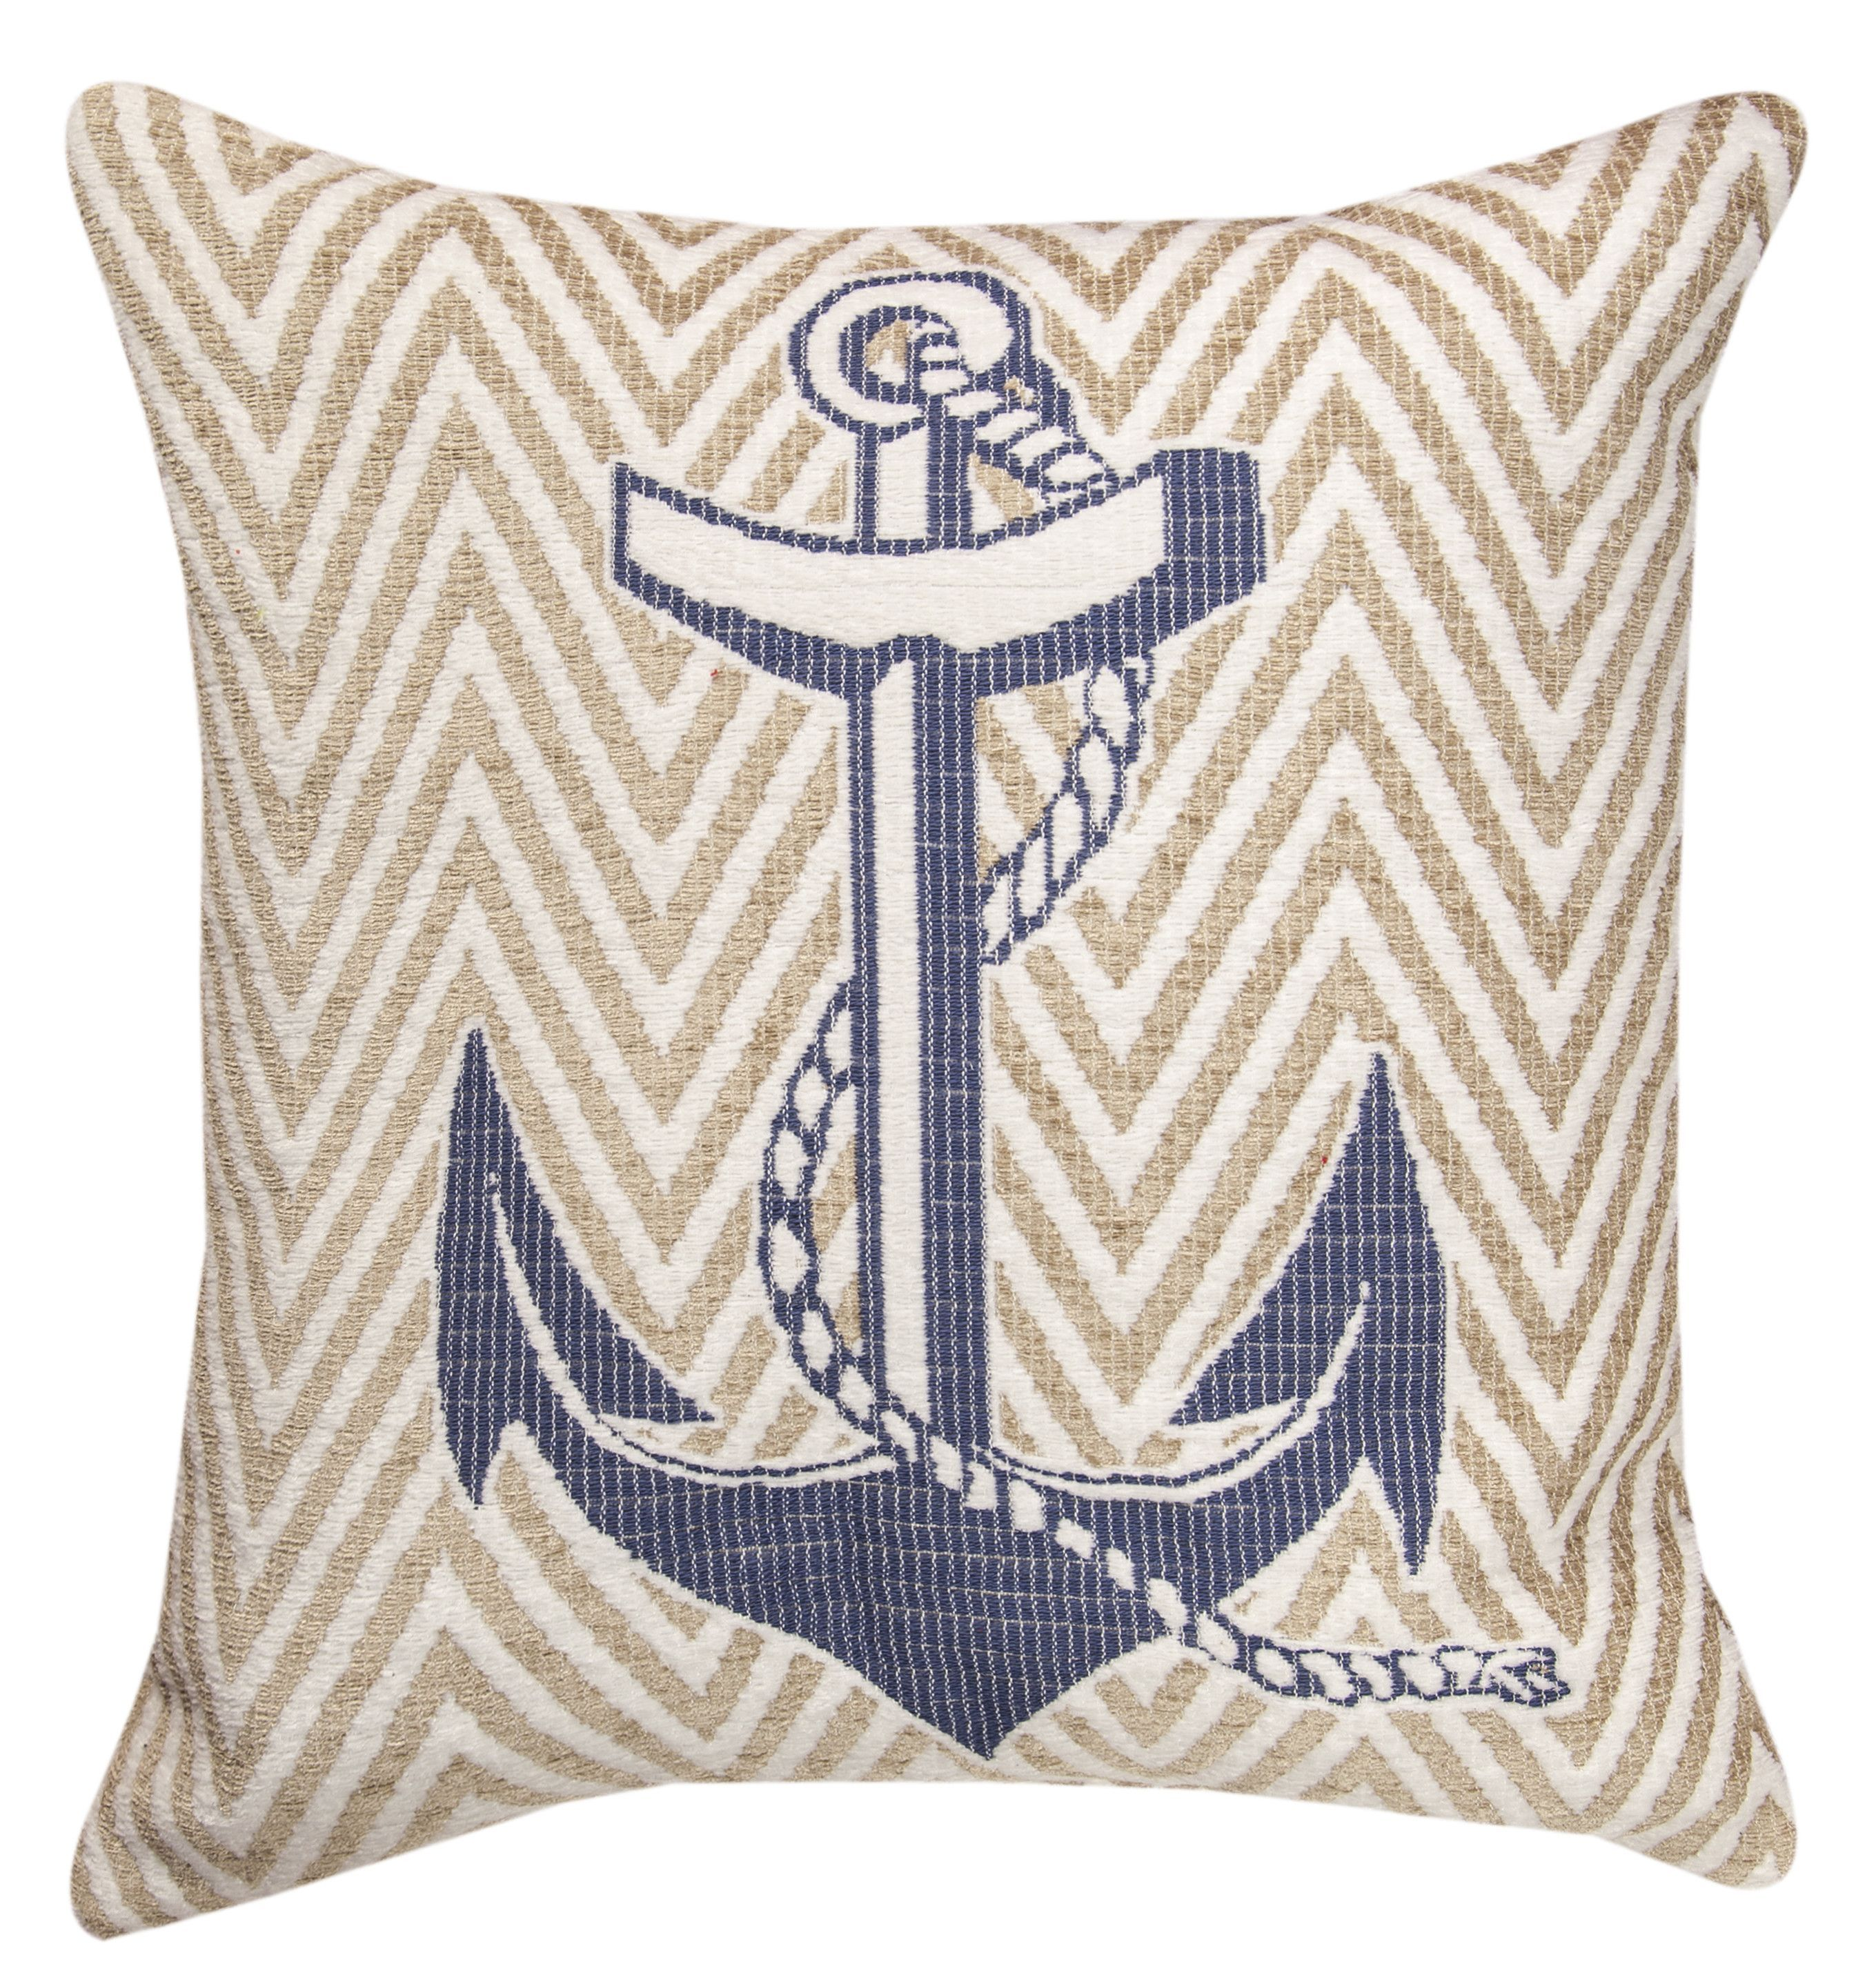 nautical throw outdoor pillows embroidered pdp reviews tides decor pillow anchor longshore sudie wayfair